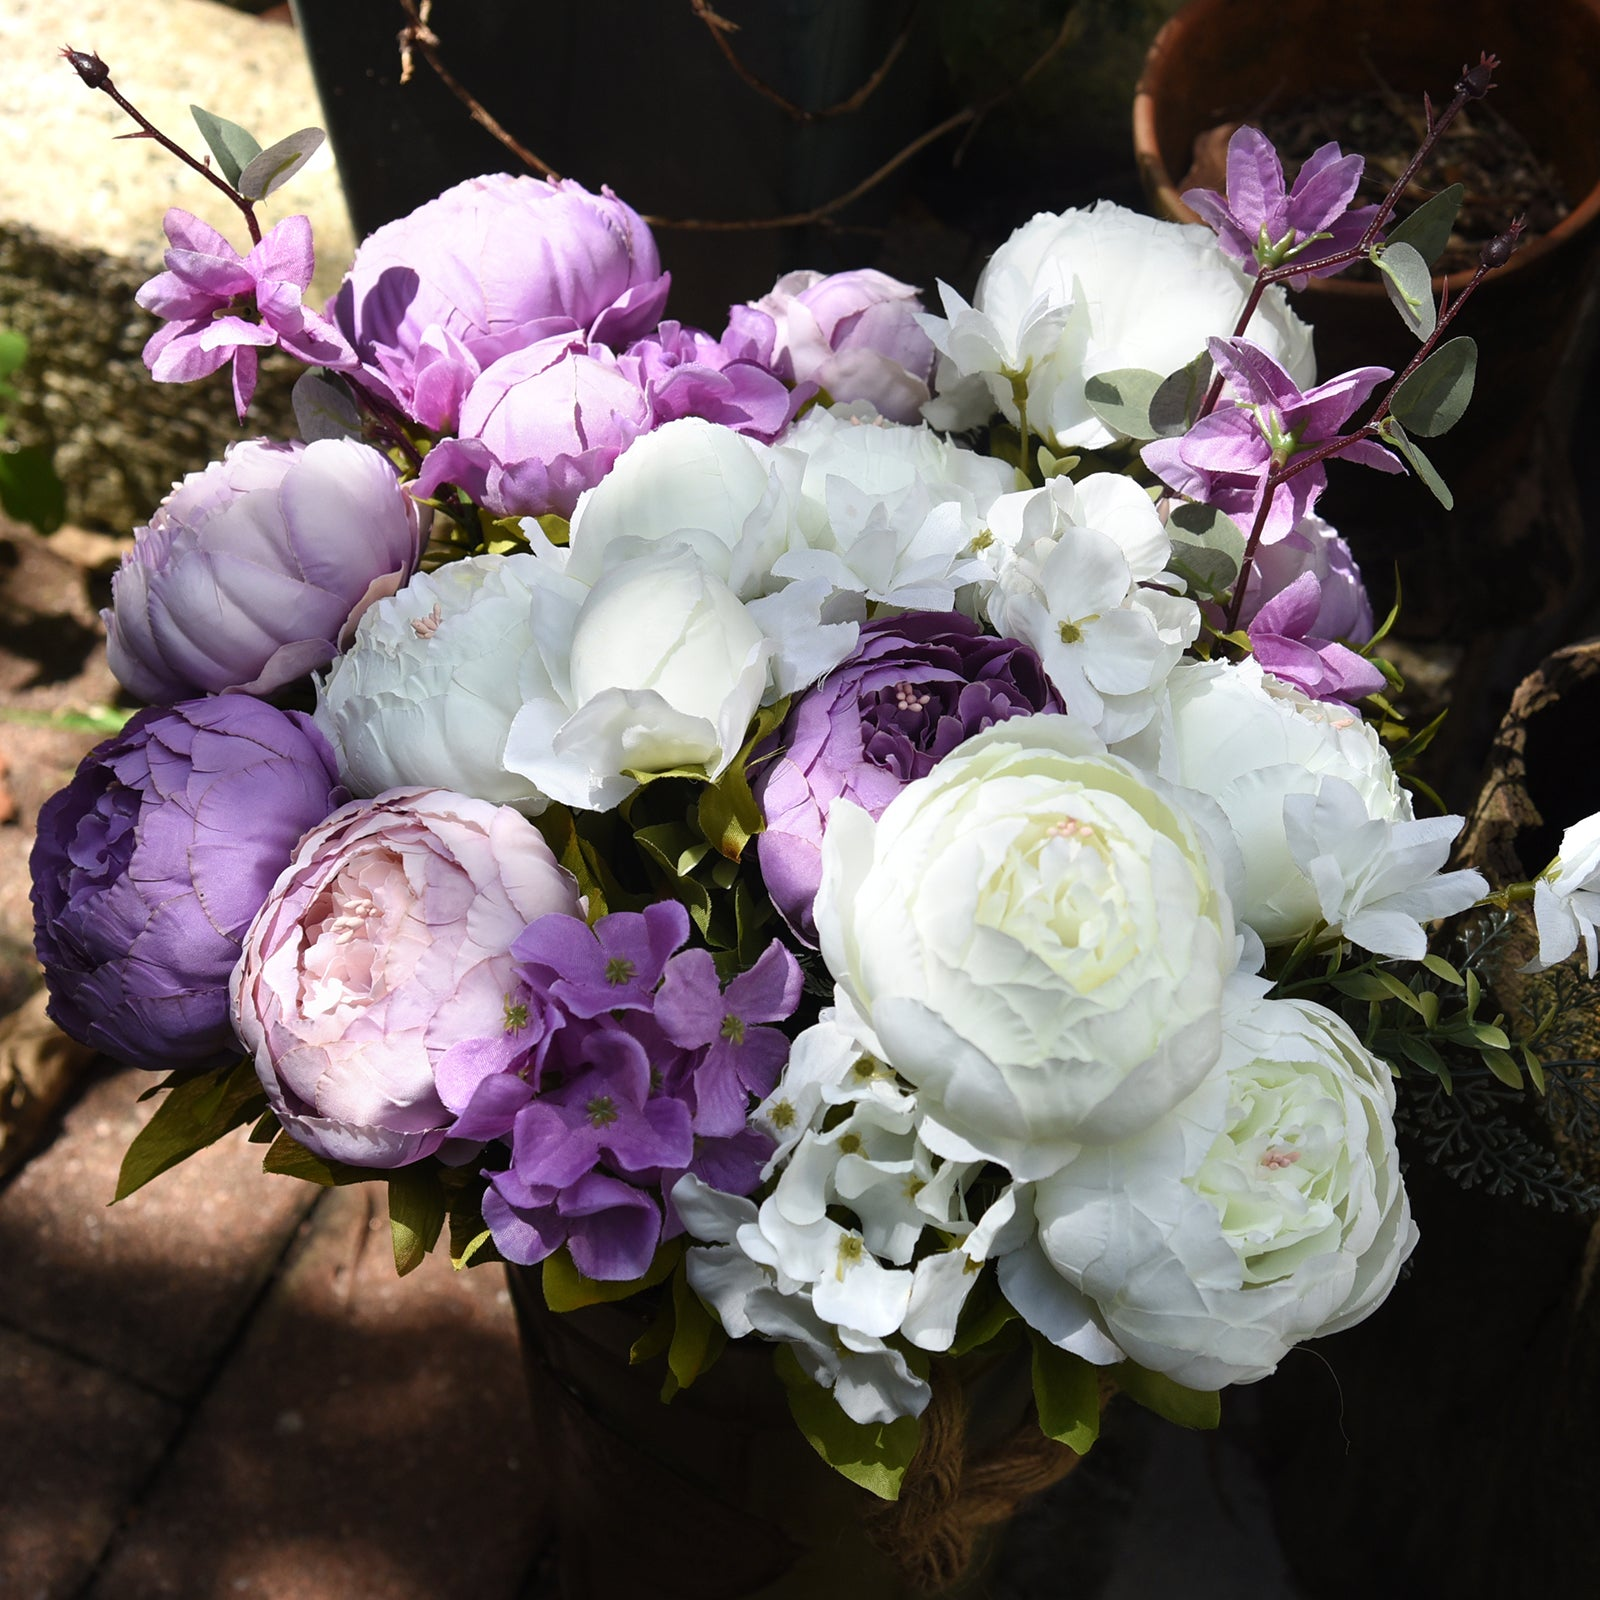 FiveSeasonStuff 2 Bundles White|Purple Silk Peonies Artificial Flower Bouquet